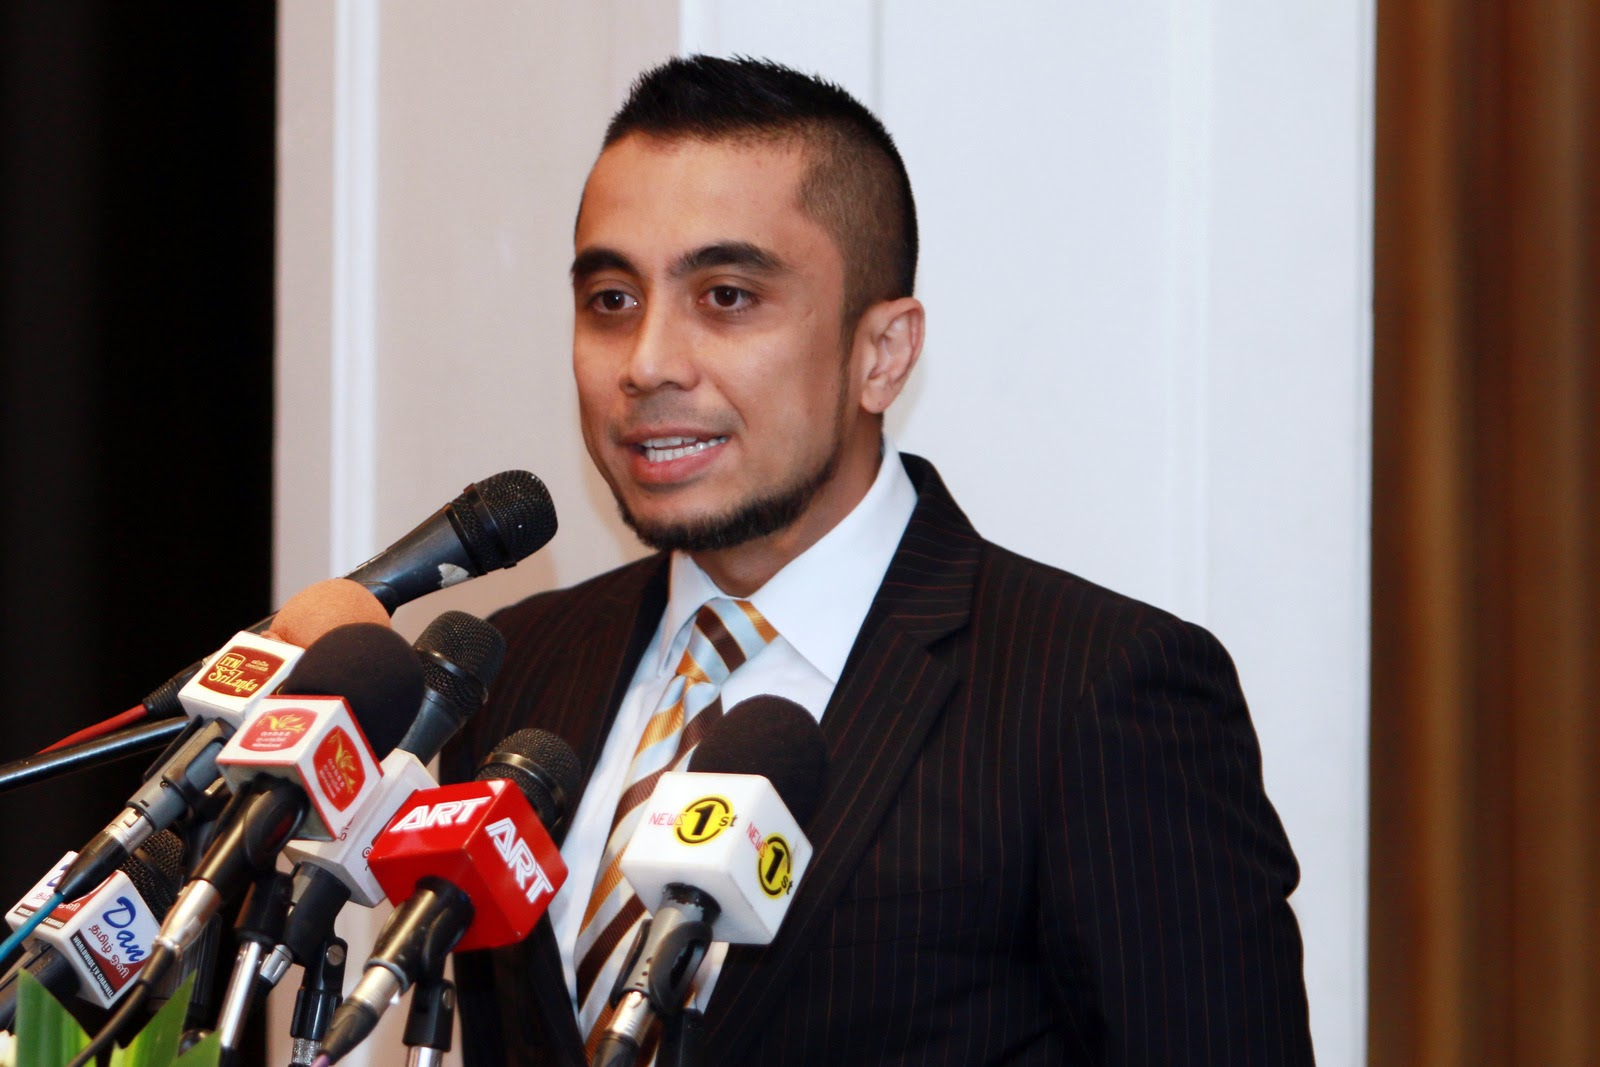 Mr. Syed Zen Bin Syed Mustafa (Managing Director of SME Factors, Malaysia)